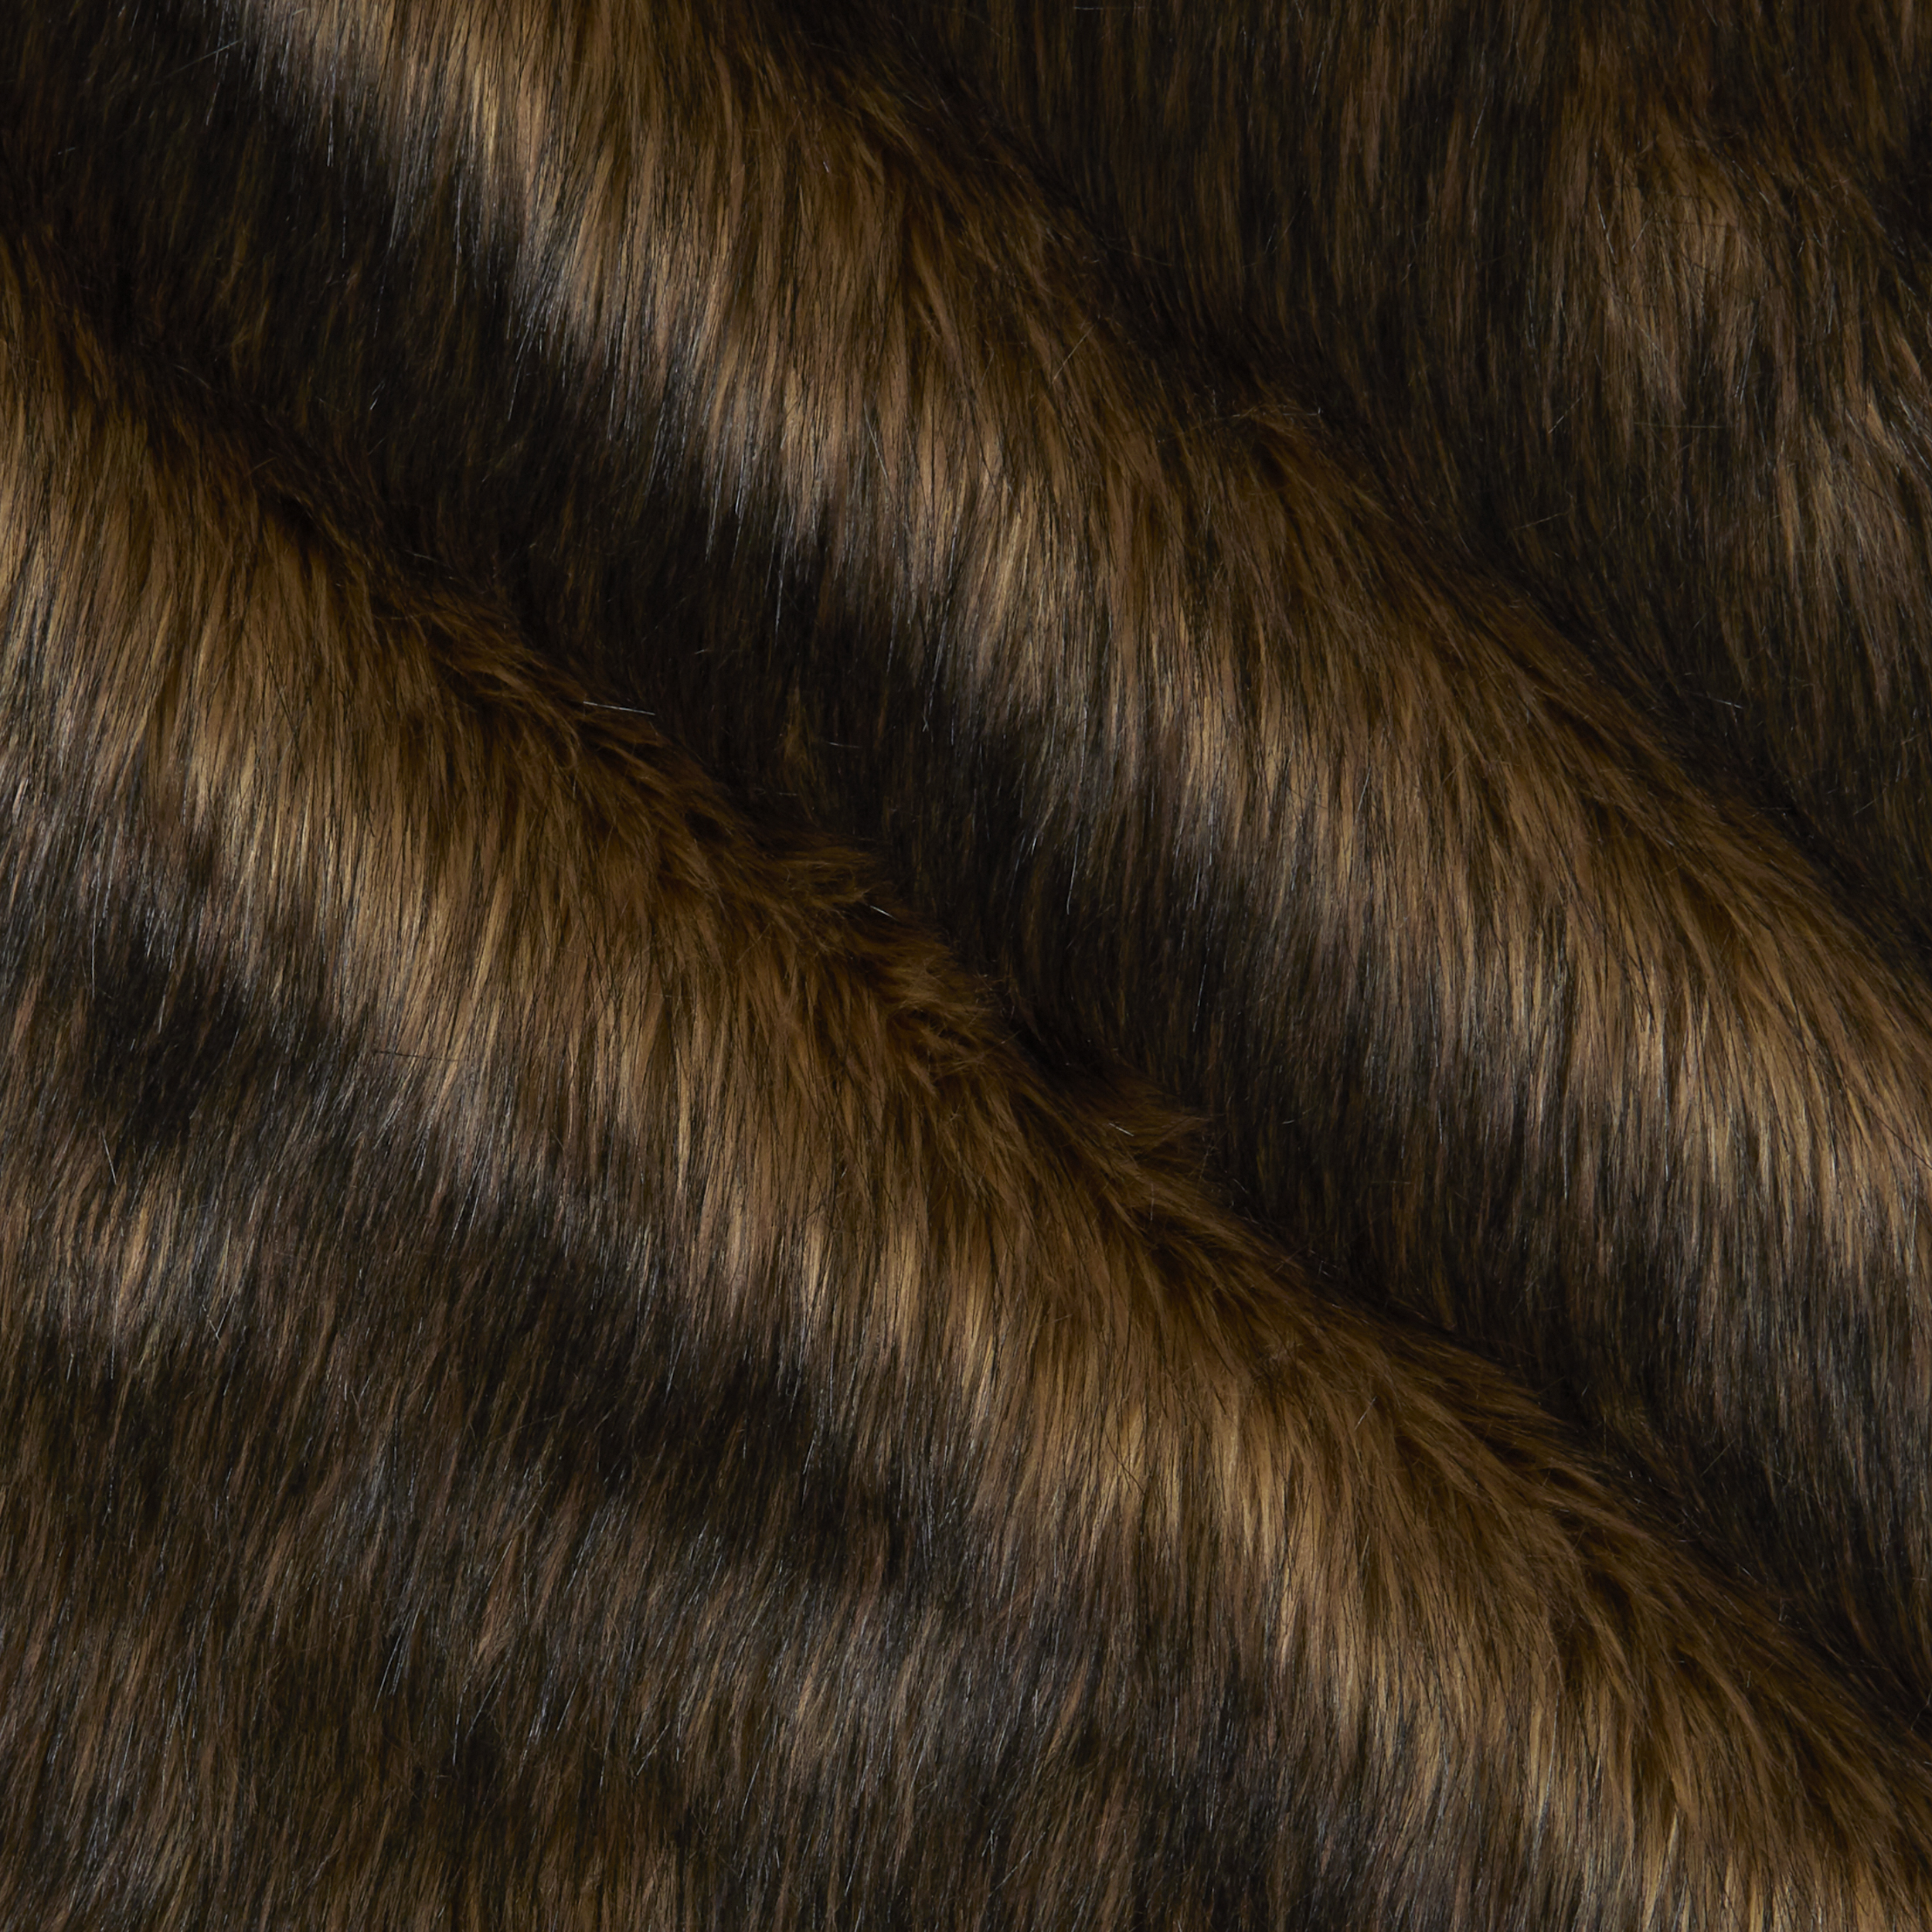 Faux Fur Wolf Brown/Black Fabric